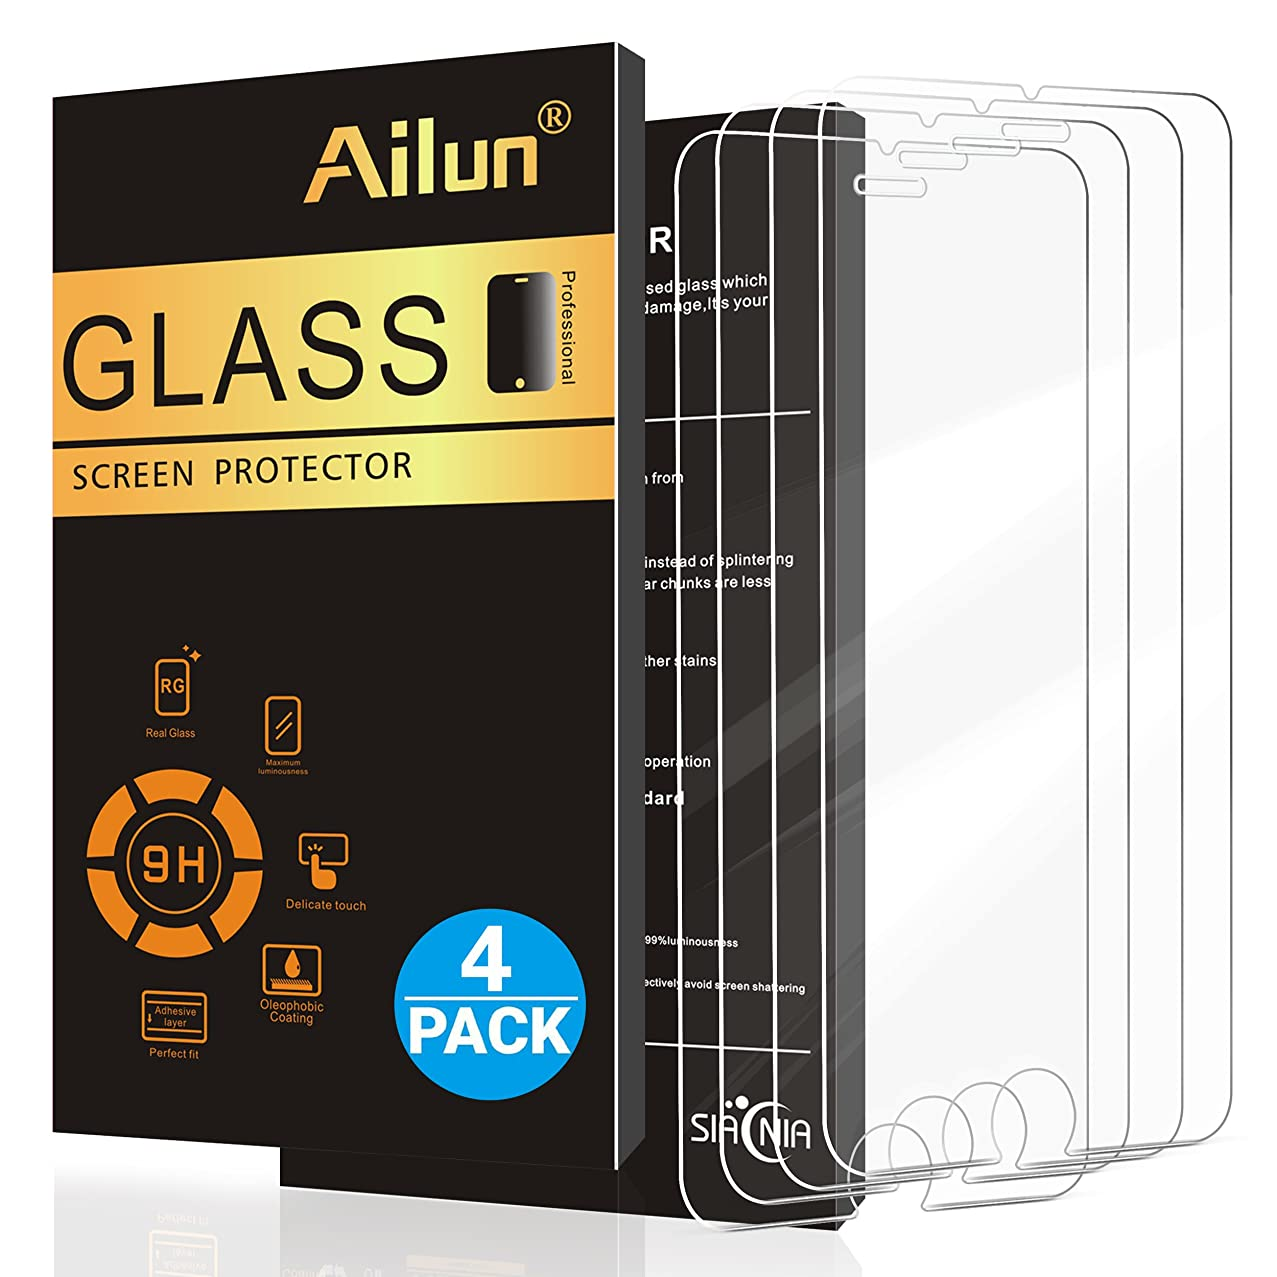 Ailun Screen Protector Compatible with iPhone 8 7 6s 6,[4 Pack],2.5D Edge Tempered Glass Compatible with iPhone 8,iPhone 7,iPhone 6s,iPhone 6,Anti-Scratch,Case Friendly,Siania Retail Package